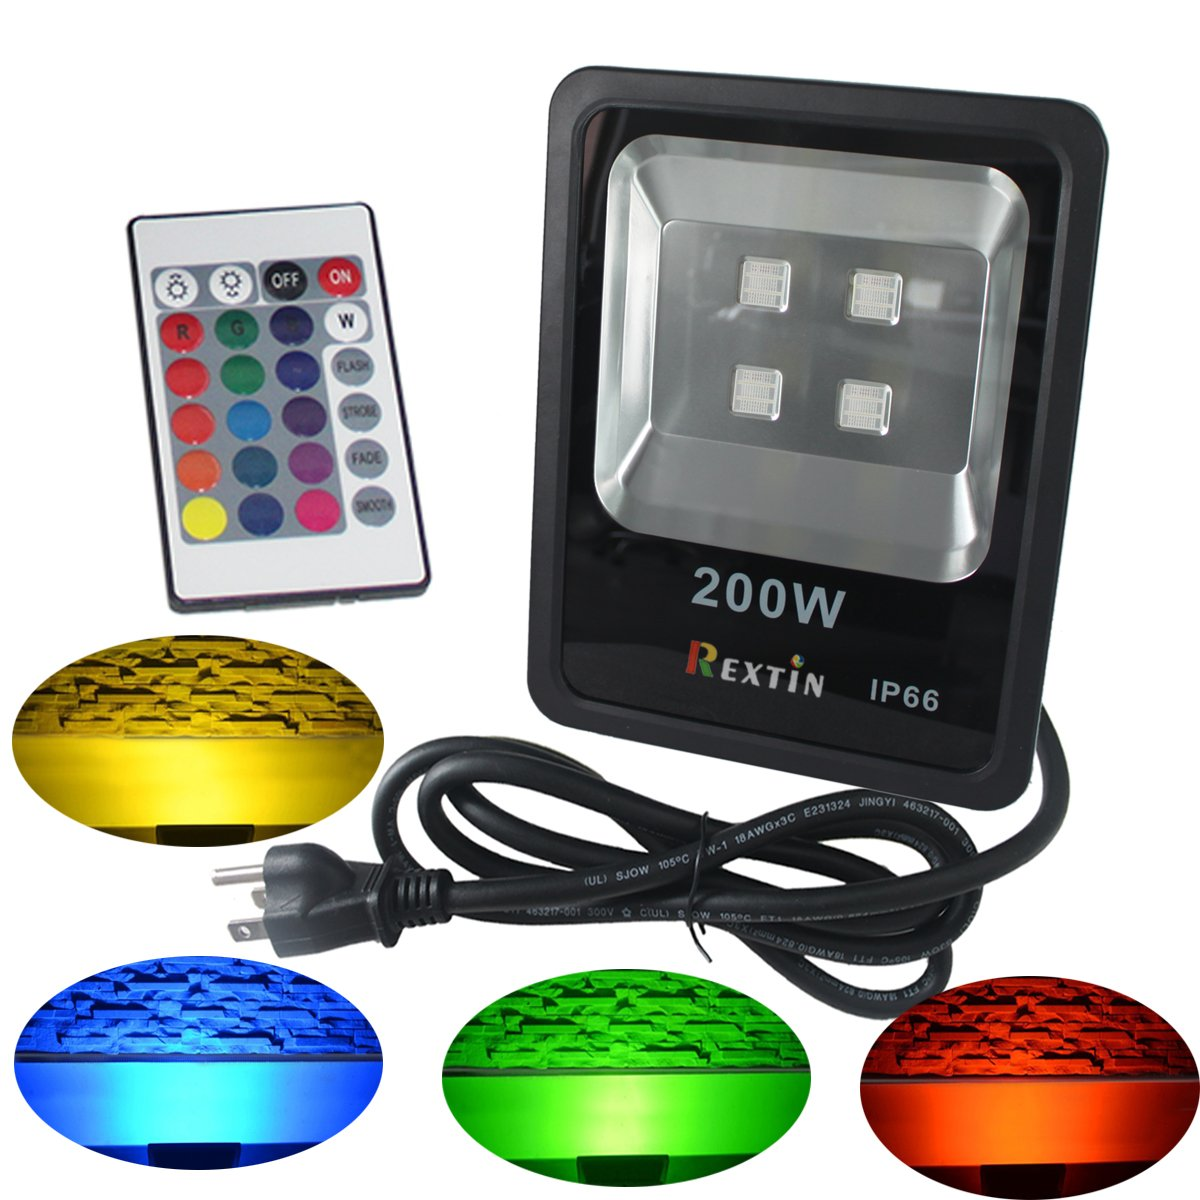 Rextin 200W Waterproof RGB LED Flood Lights Outdoor Color Changing LED securtity light with US 3 Plug , Wall Washer Light 16 Colors & 4 Modes with Remote Control (200W)